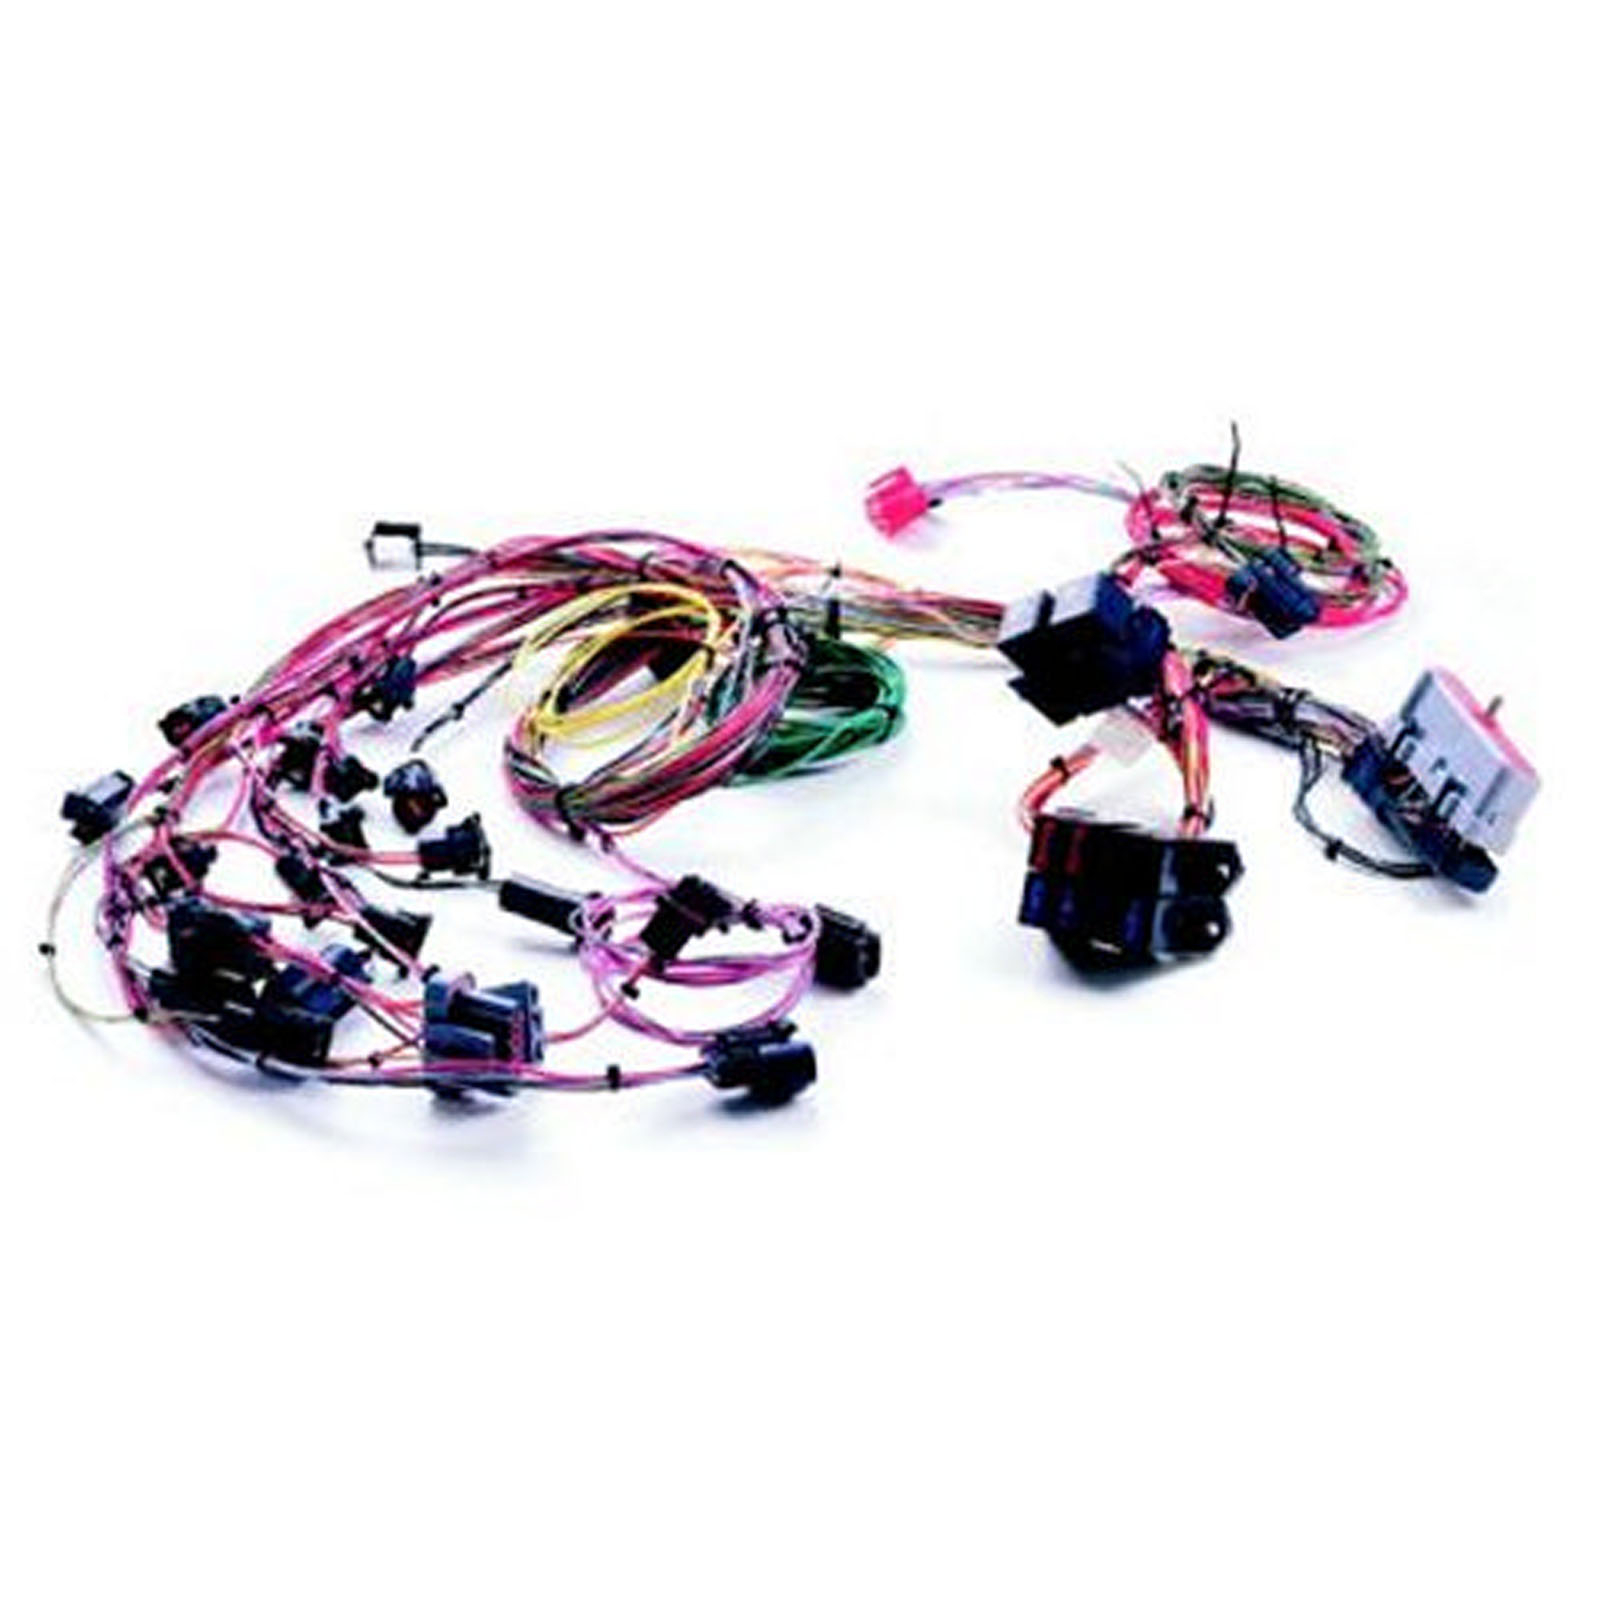 PWI60510 5 0l efi wiring harness painless on 5 download wirning diagrams  1965 Mustang Wiring Harness